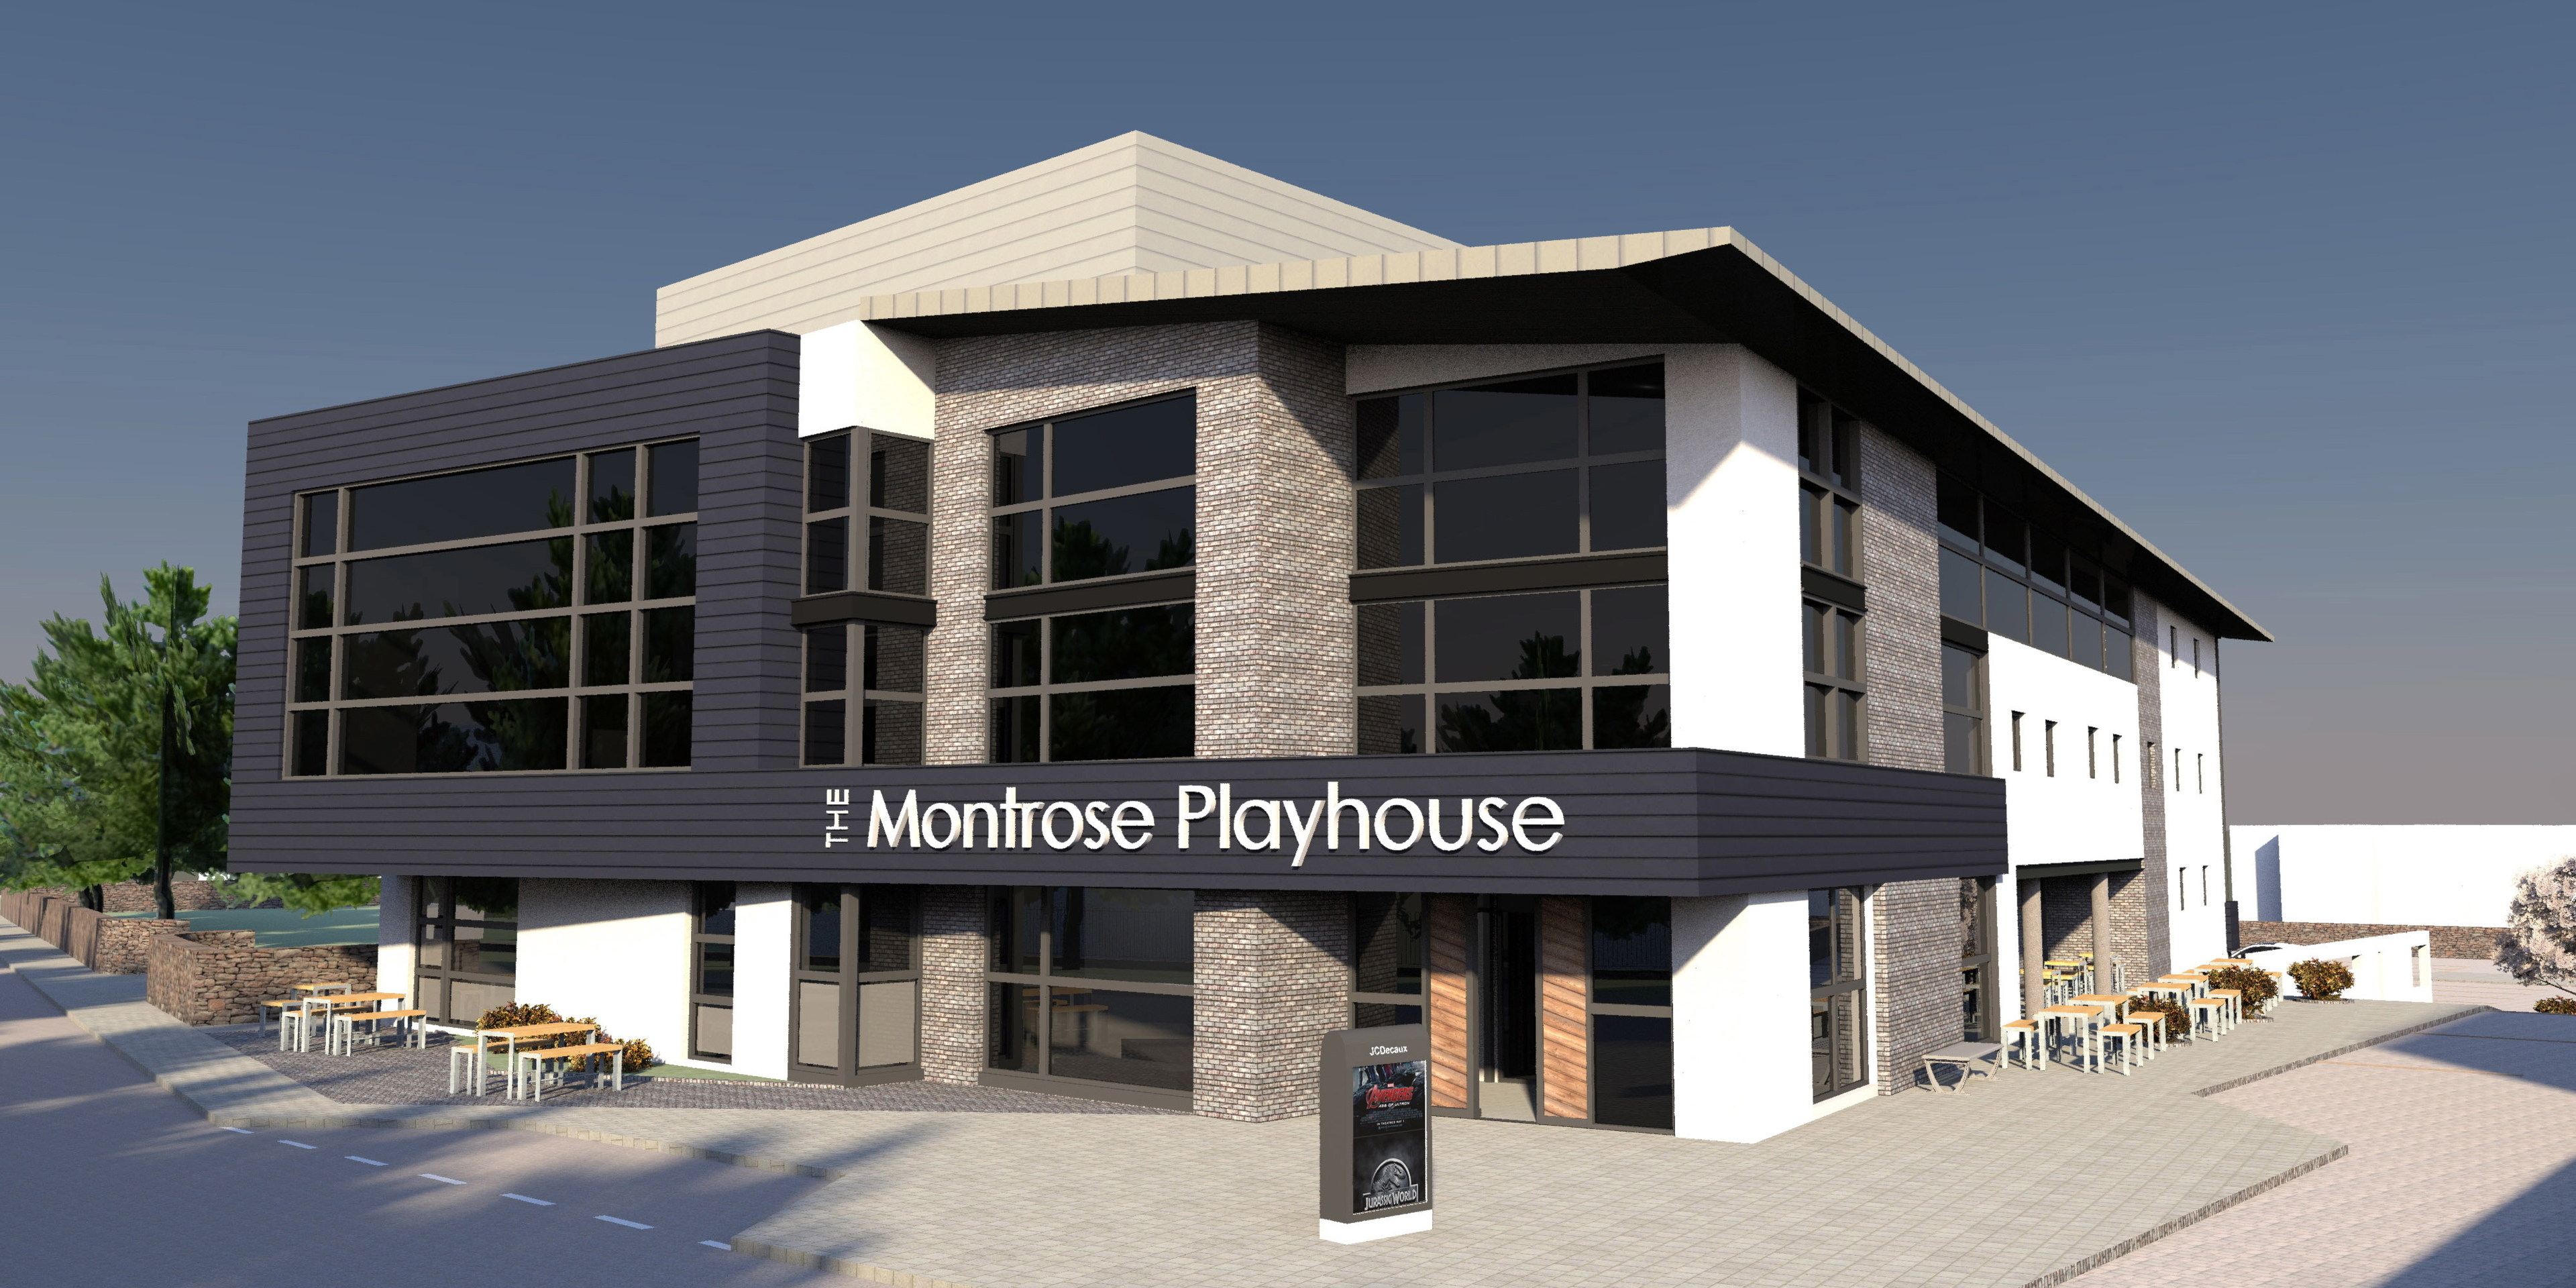 The latest artist's impressions of the Montrose Playhouse.